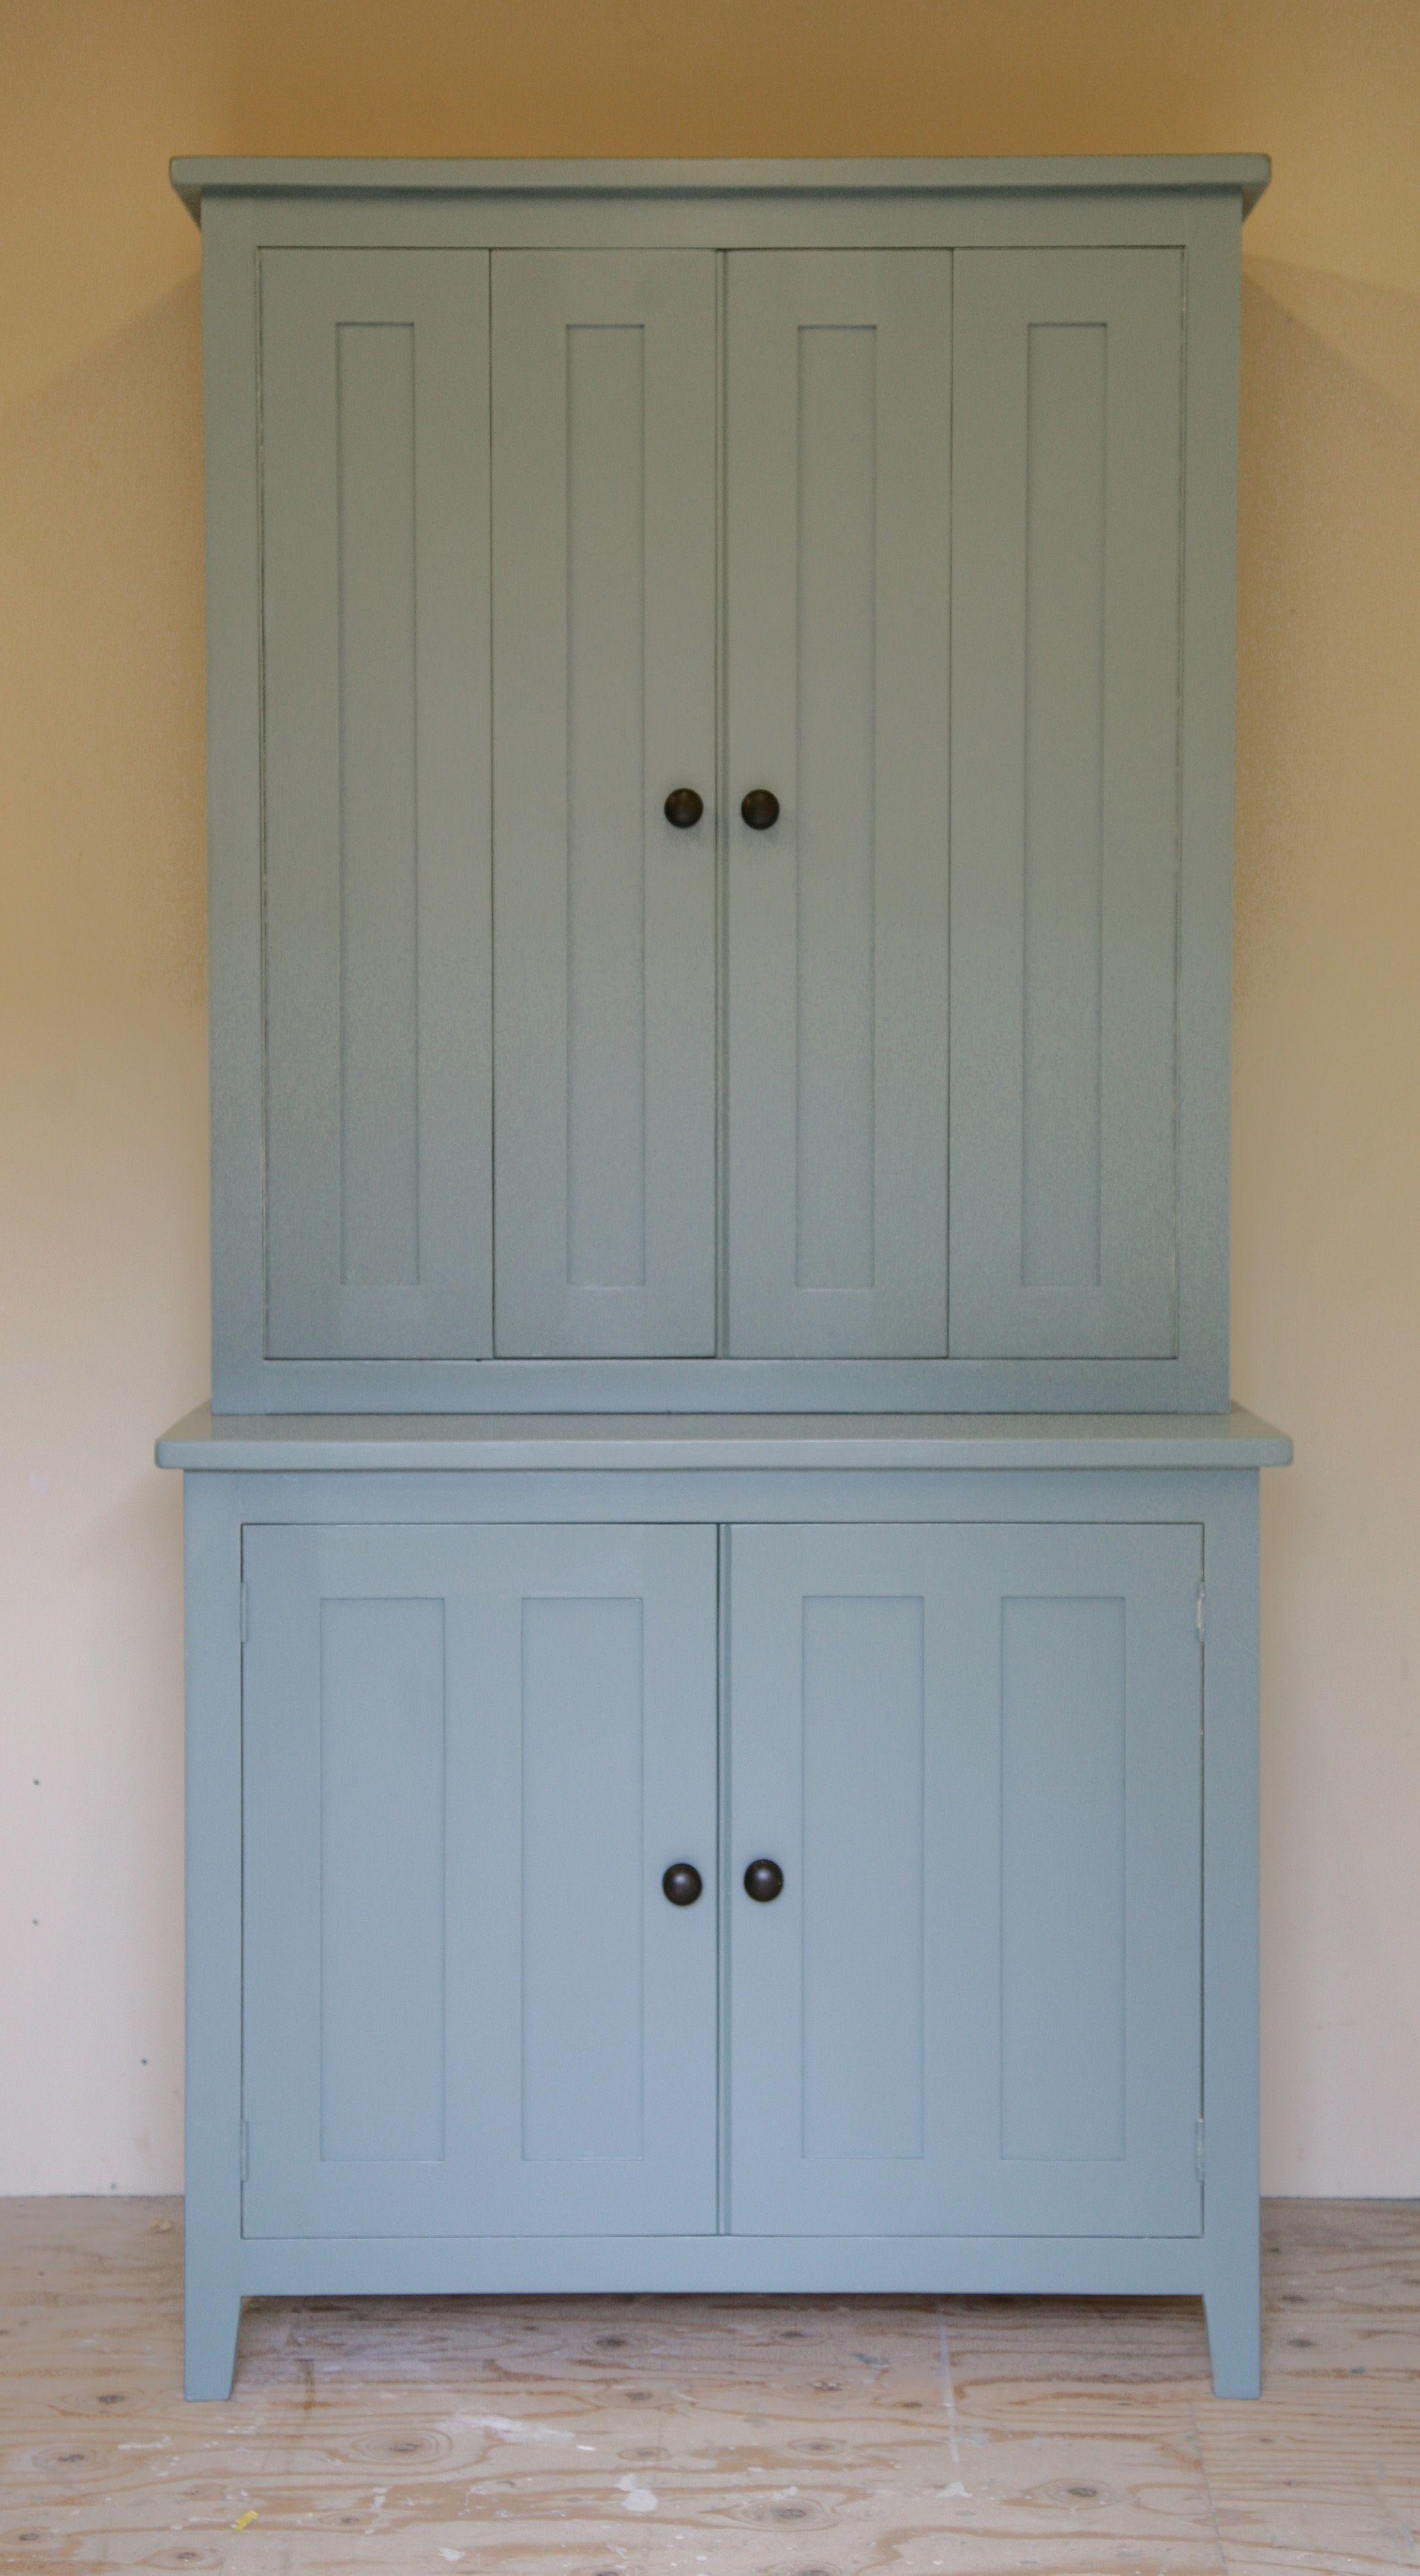 Our freestanding larder unit with bi-folding doors, complete with ...